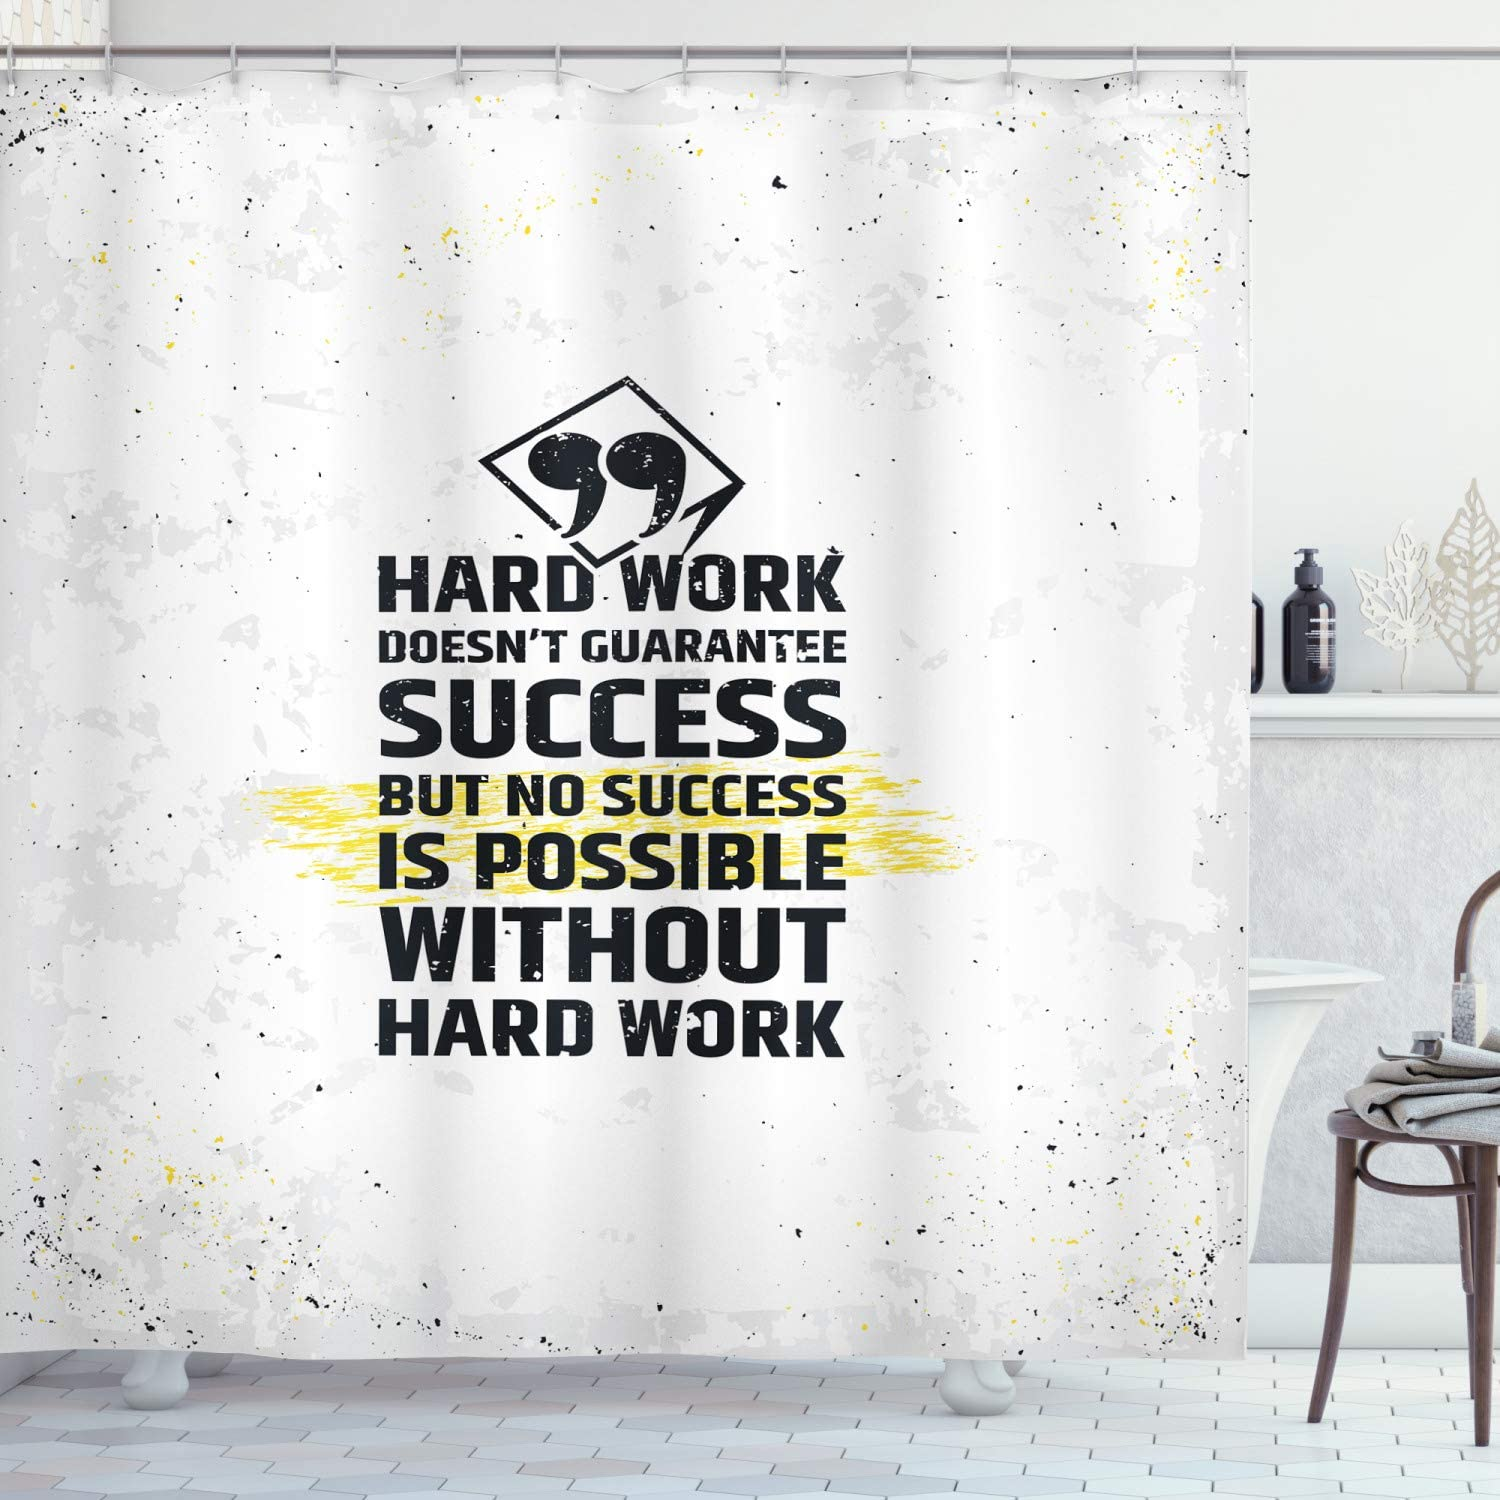 Amazon Com Ambesonne Wording Shower Curtain Hard Work Success Inspirational Words Grunge Theme Typographic Concept Cloth Fabric Bathroom Decor Set With Hooks 70 Long Yellow Black White Home Kitchen